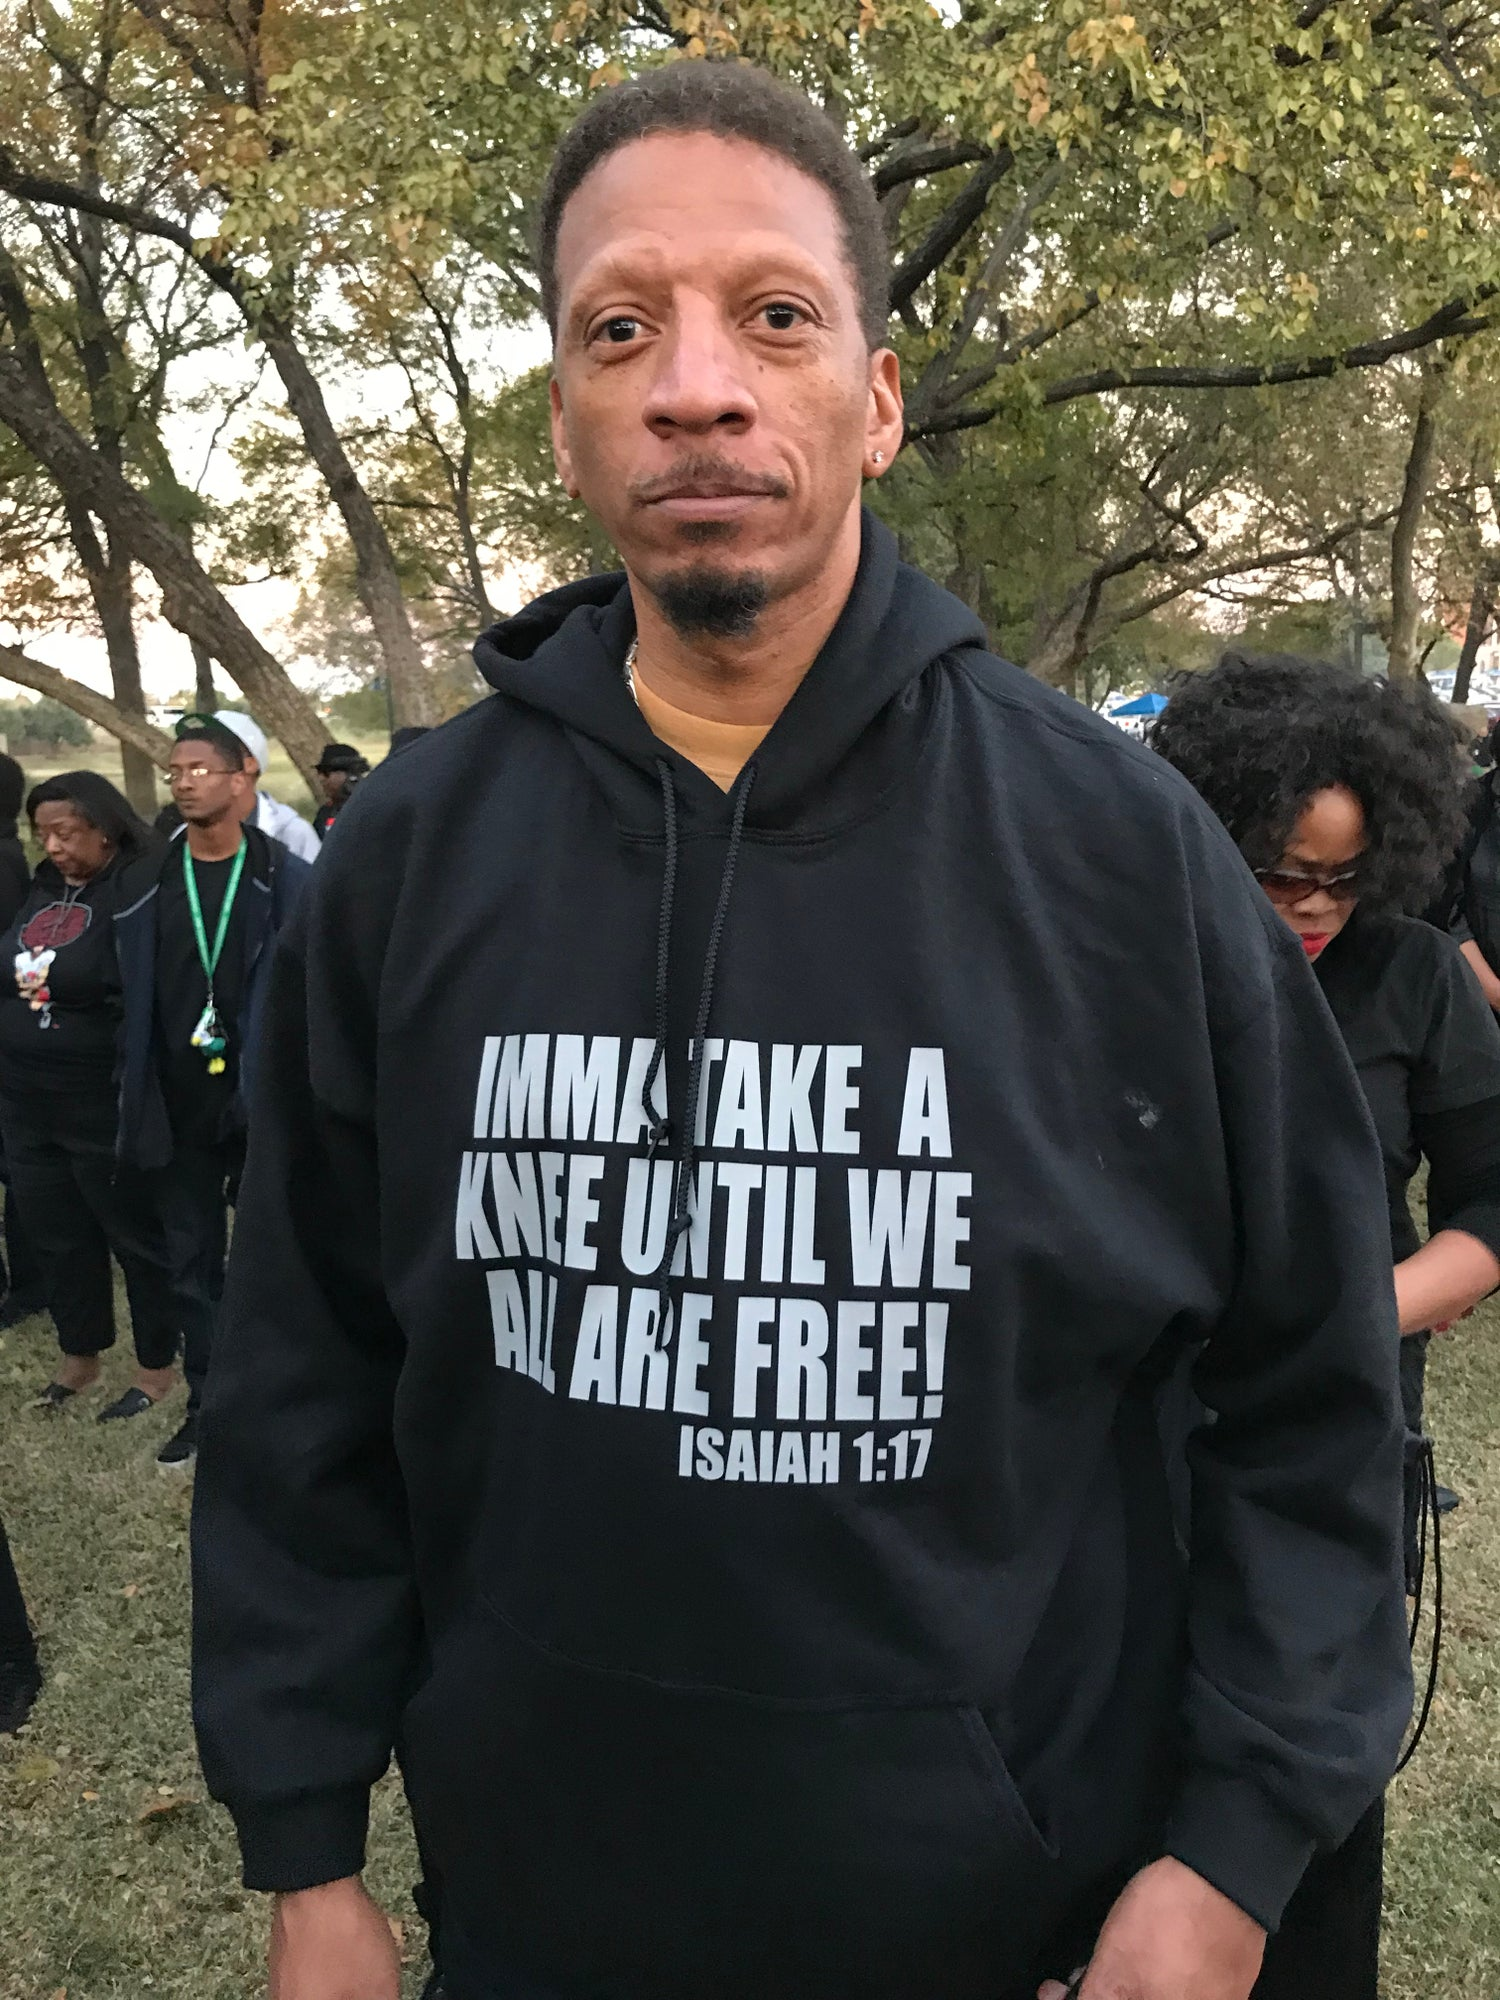 Image of MEN'S IMMA TAKE A KNEE UNTIL WE ALL ARE FREE ISAIAH 1:17 IN HOODIES & T-SHIRT